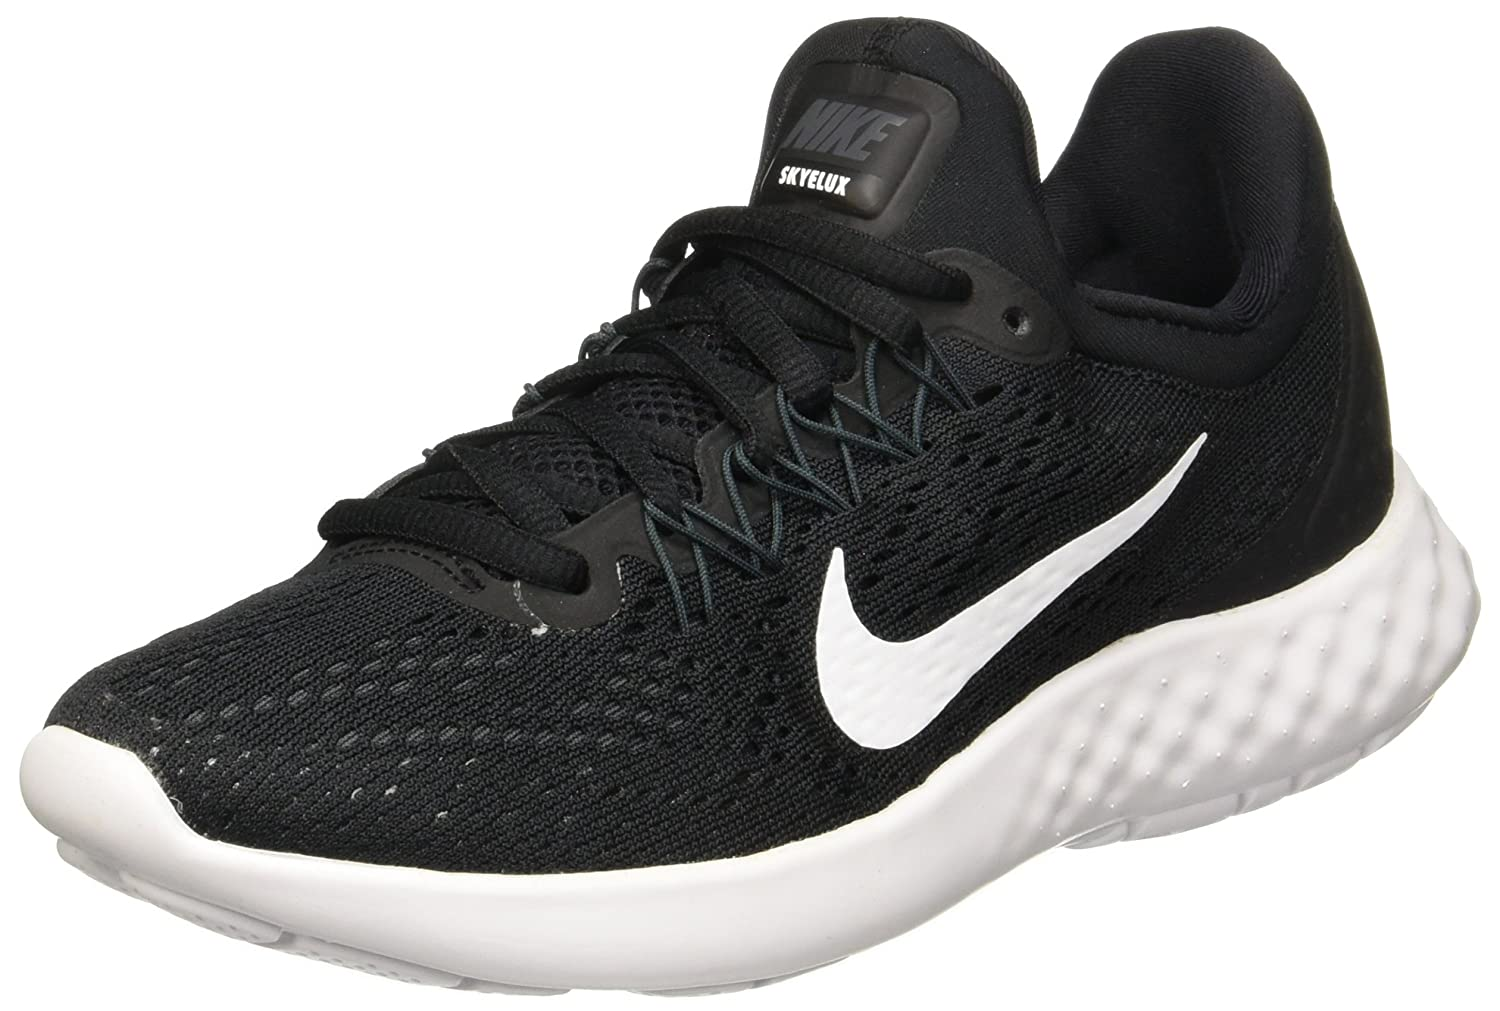 NIKE Womens Lunar Skyelux Round Toe Lace-up Running Shoes B01CJ3N1MO 12 B(M) US|Black/White Anthracite